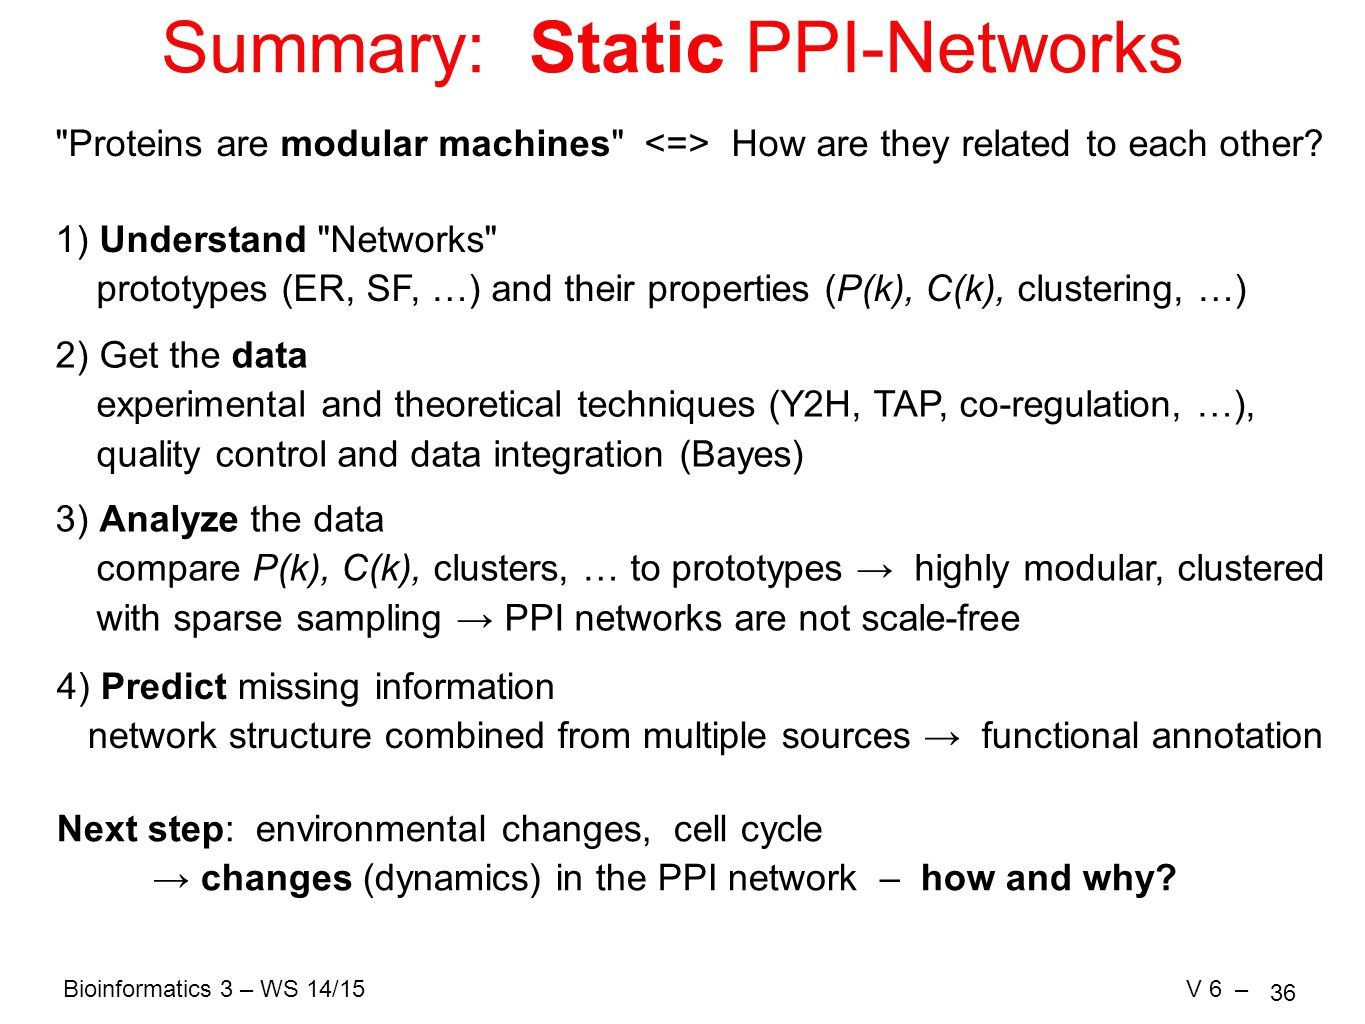 Bioinformatics 3 – WS 14/15V 6 – 36 Summary: Static PPI-Networks Proteins are modular machines How are they related to each other.